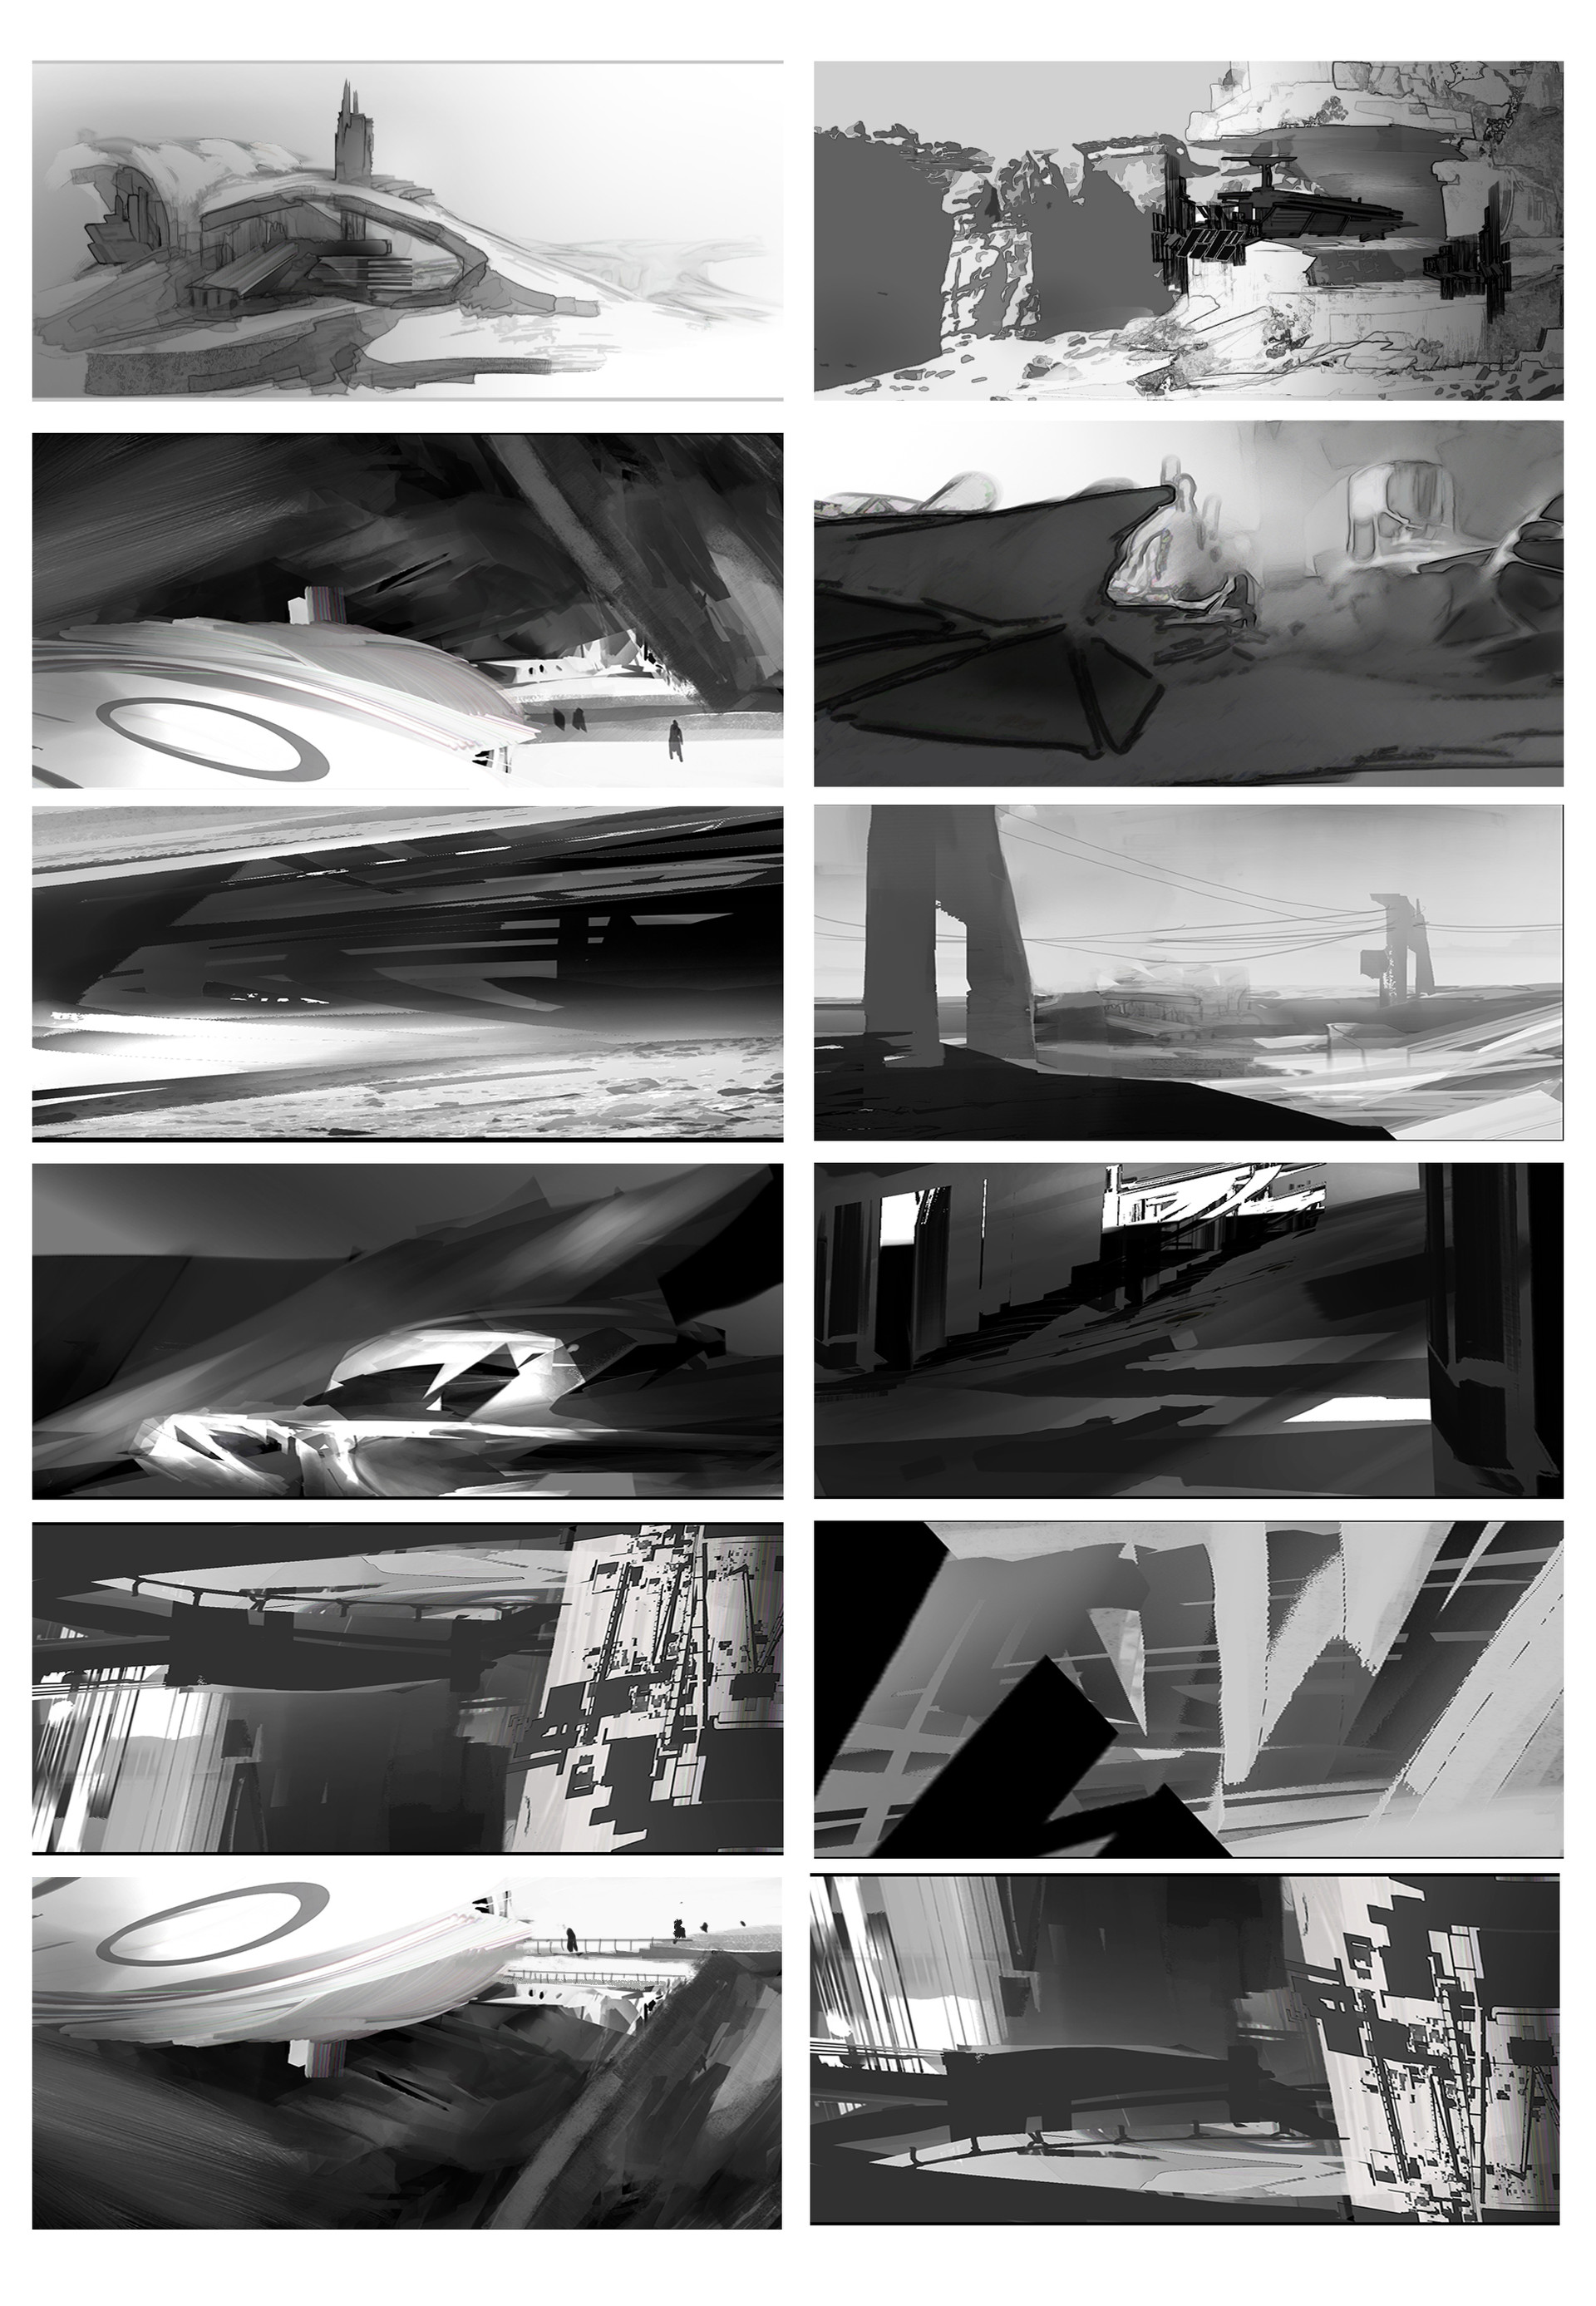 2d values thumbnails